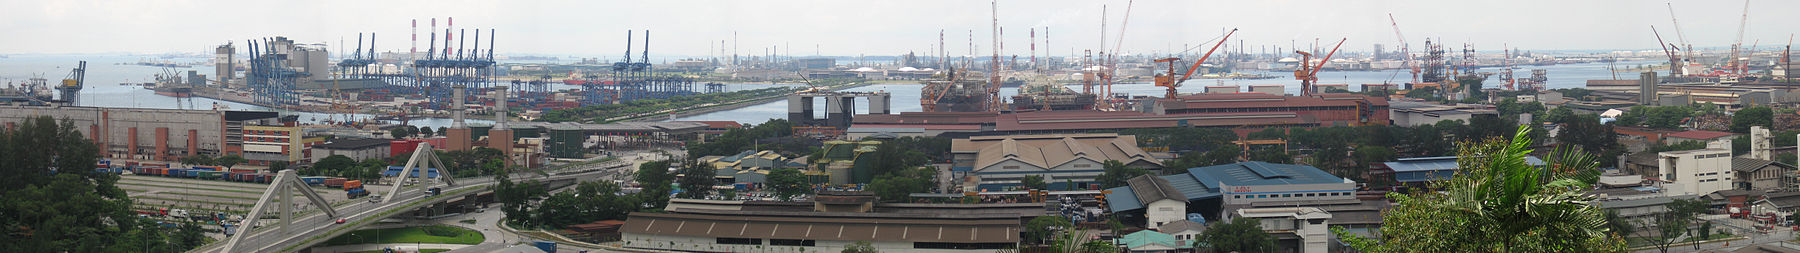 Jurong Industrial Estate with Jurong Island in the background, photographed in November 2006 Jurong Industrial Estate and Jurong Island, panorama, Nov 06.jpg